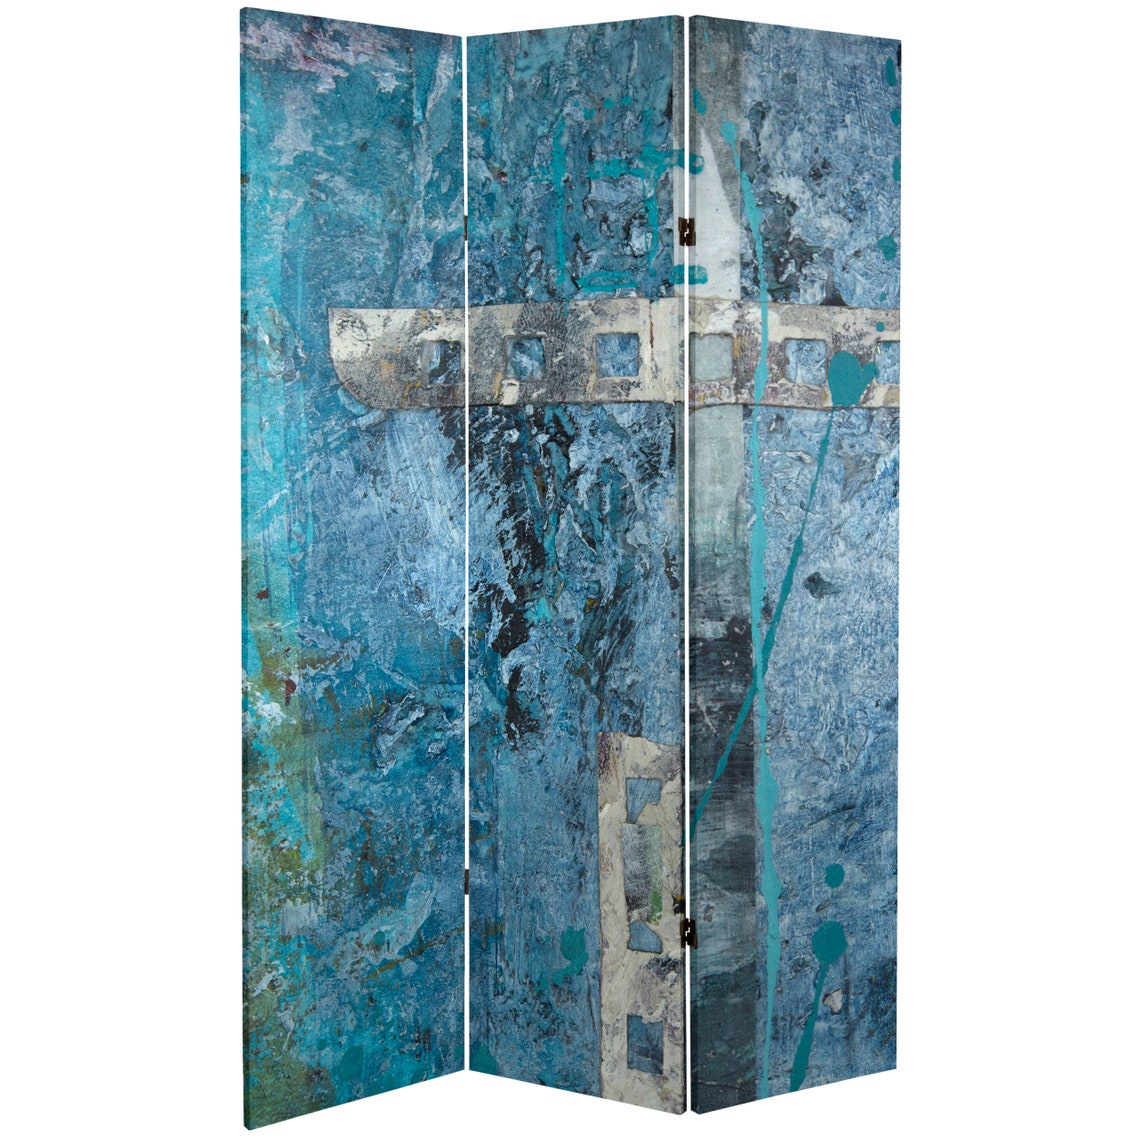 6 ft. Tall Double Sided Blue Dream Canvas Room Divider